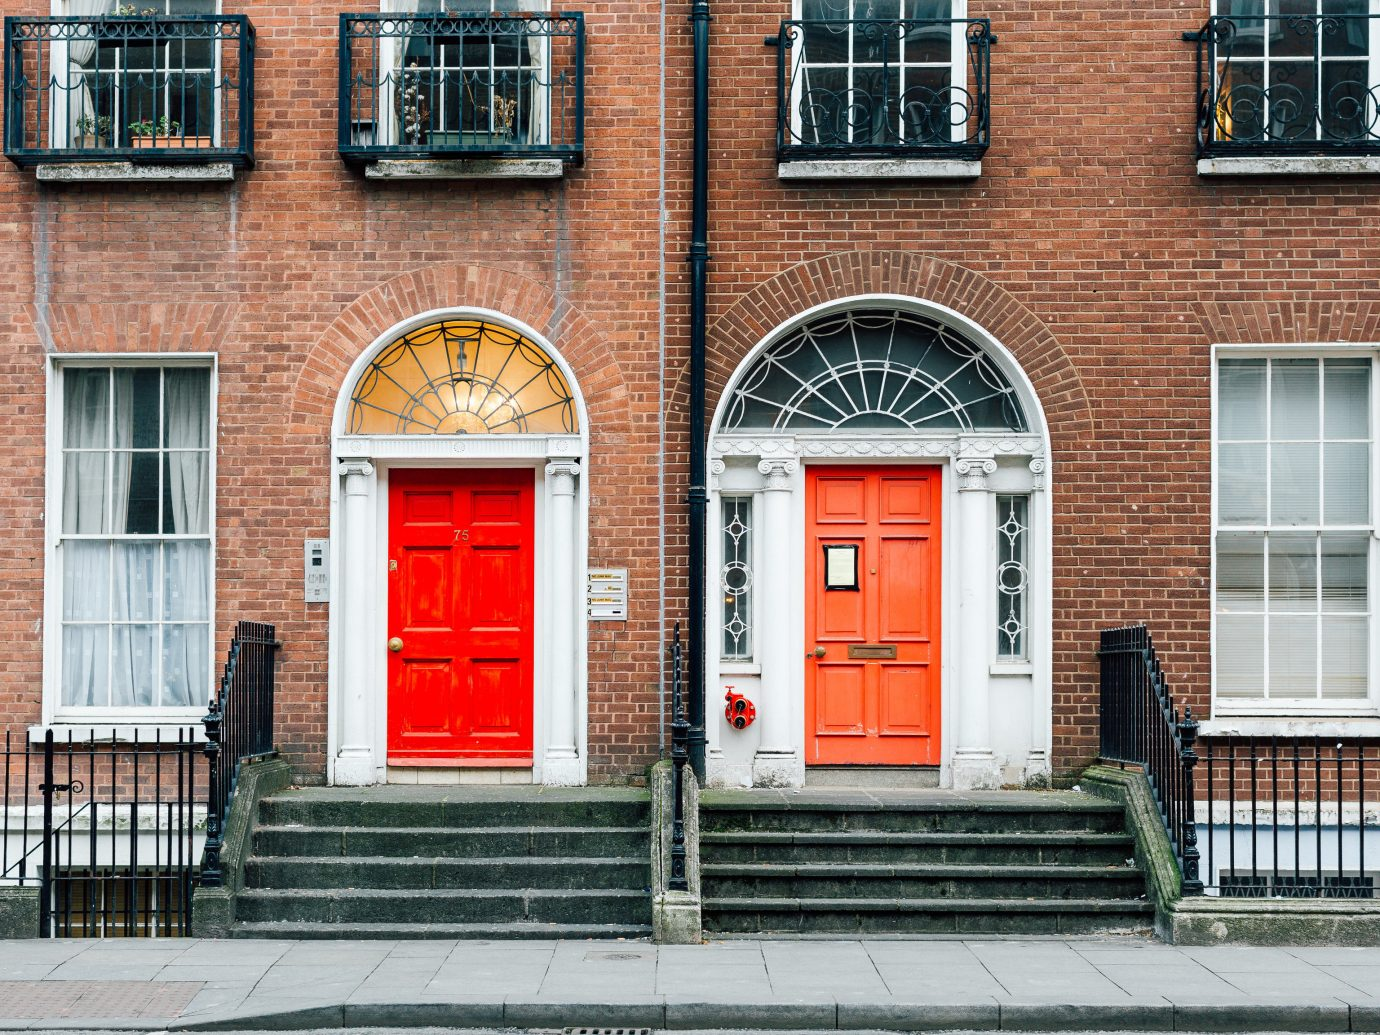 Travel Tips building outdoor color red urban area neighbourhood Town road City Architecture house wall facade brick window Downtown street door home